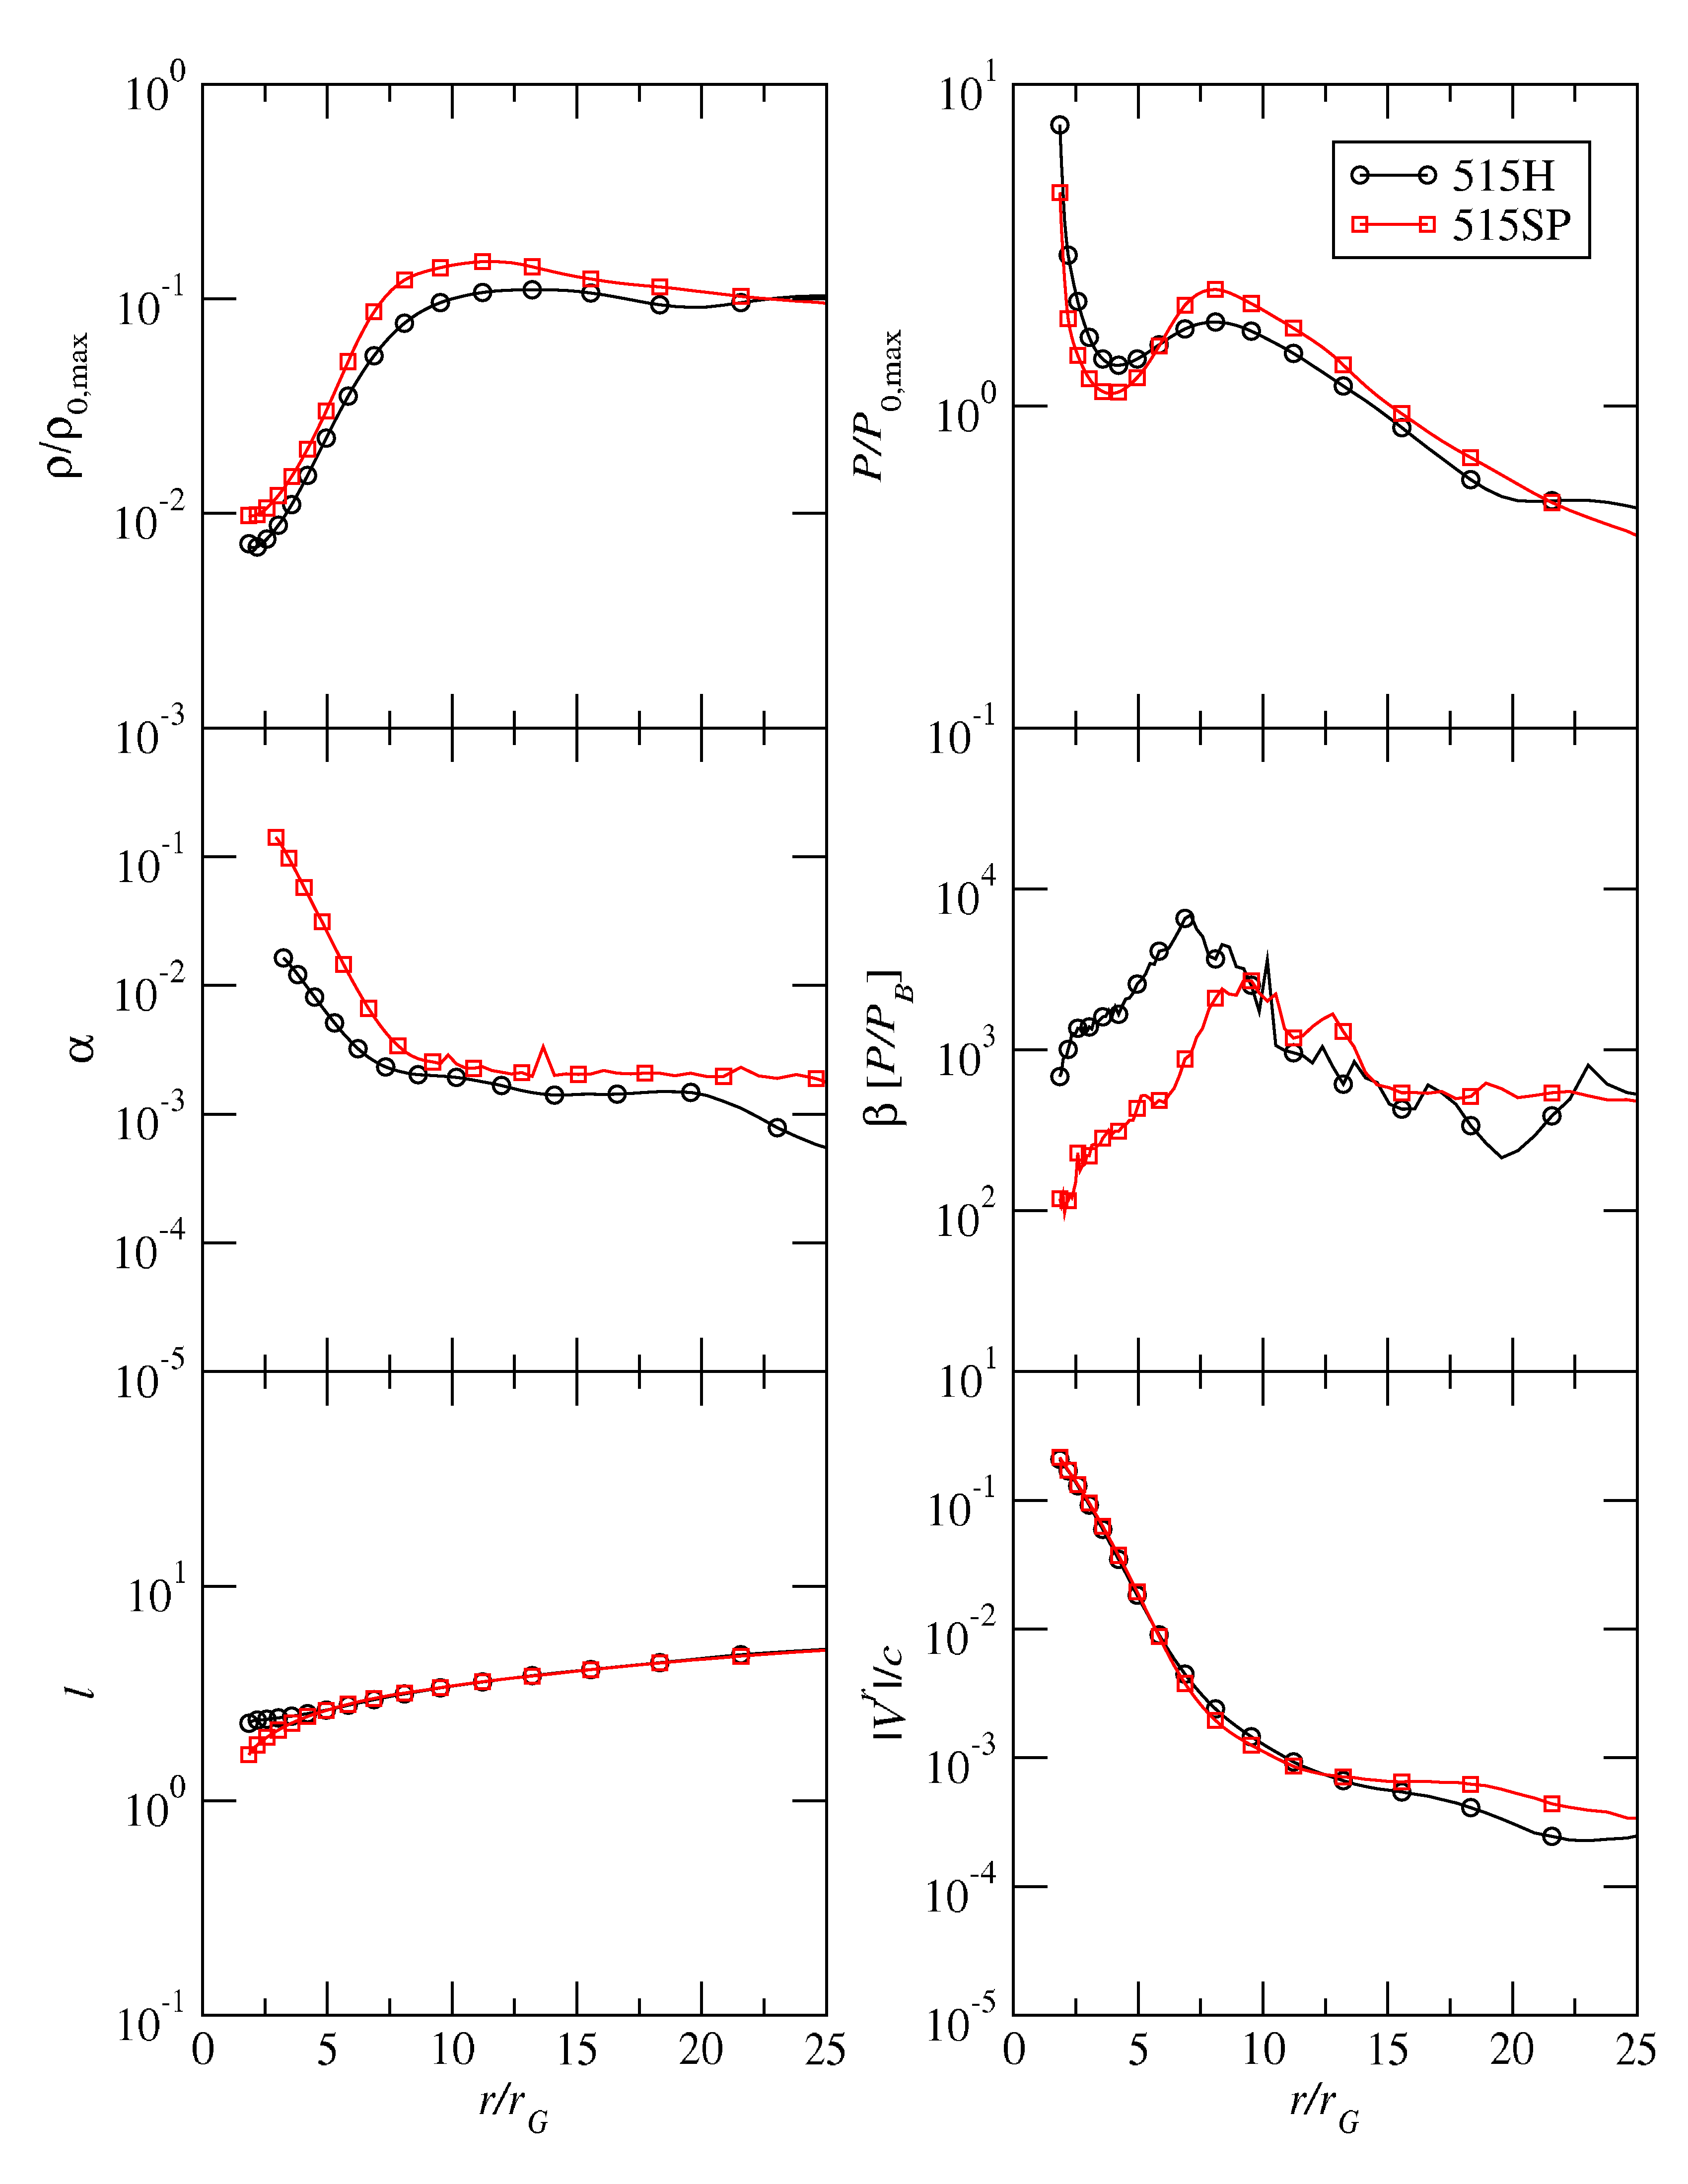 Main disk properties plotted as a function of radius for simulations 515H and 515SP. The data have been time-averaged over the final two orbital periods of each simulation (